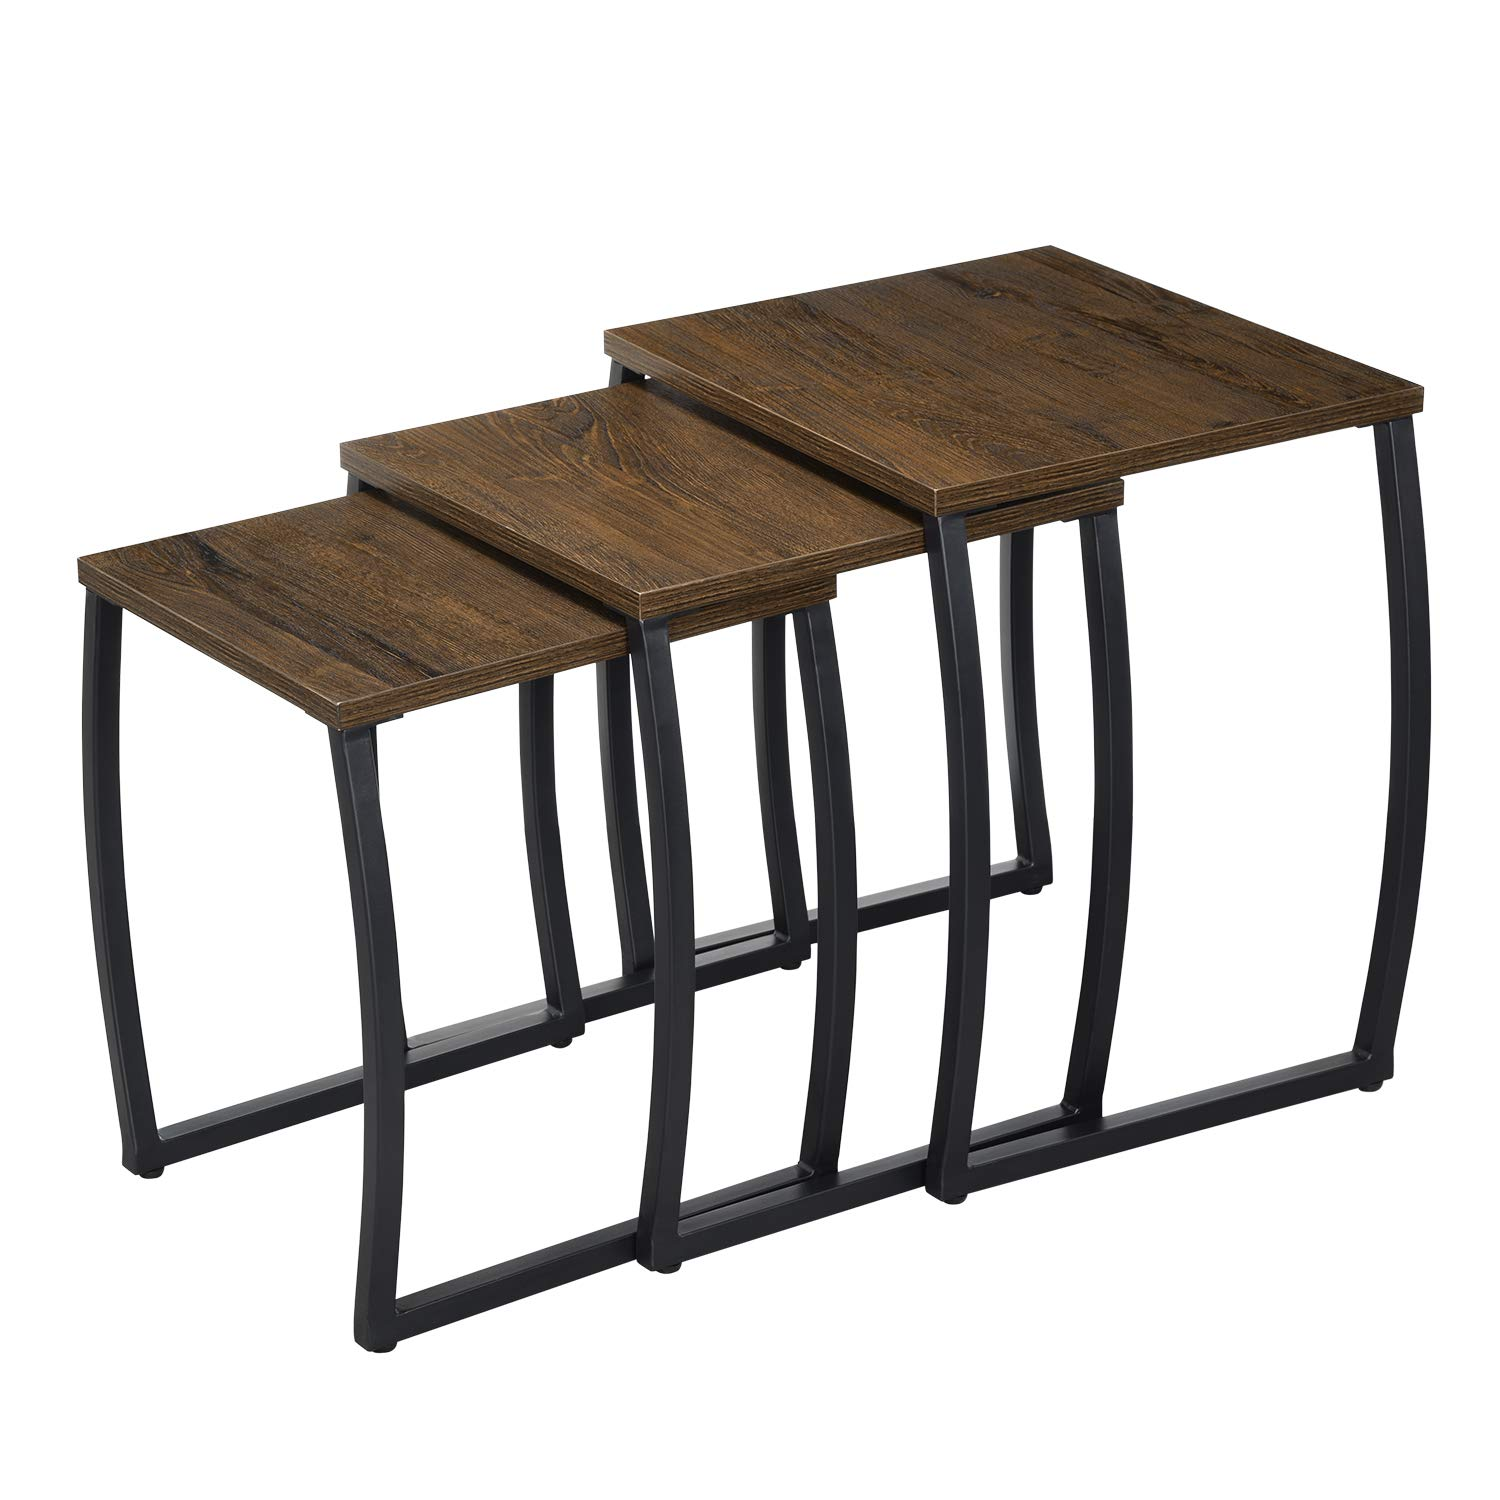 Nesting Tables, Vintage Side End Tables Living Room, Coffee Snack Table Set of 3 by SRIWATANA